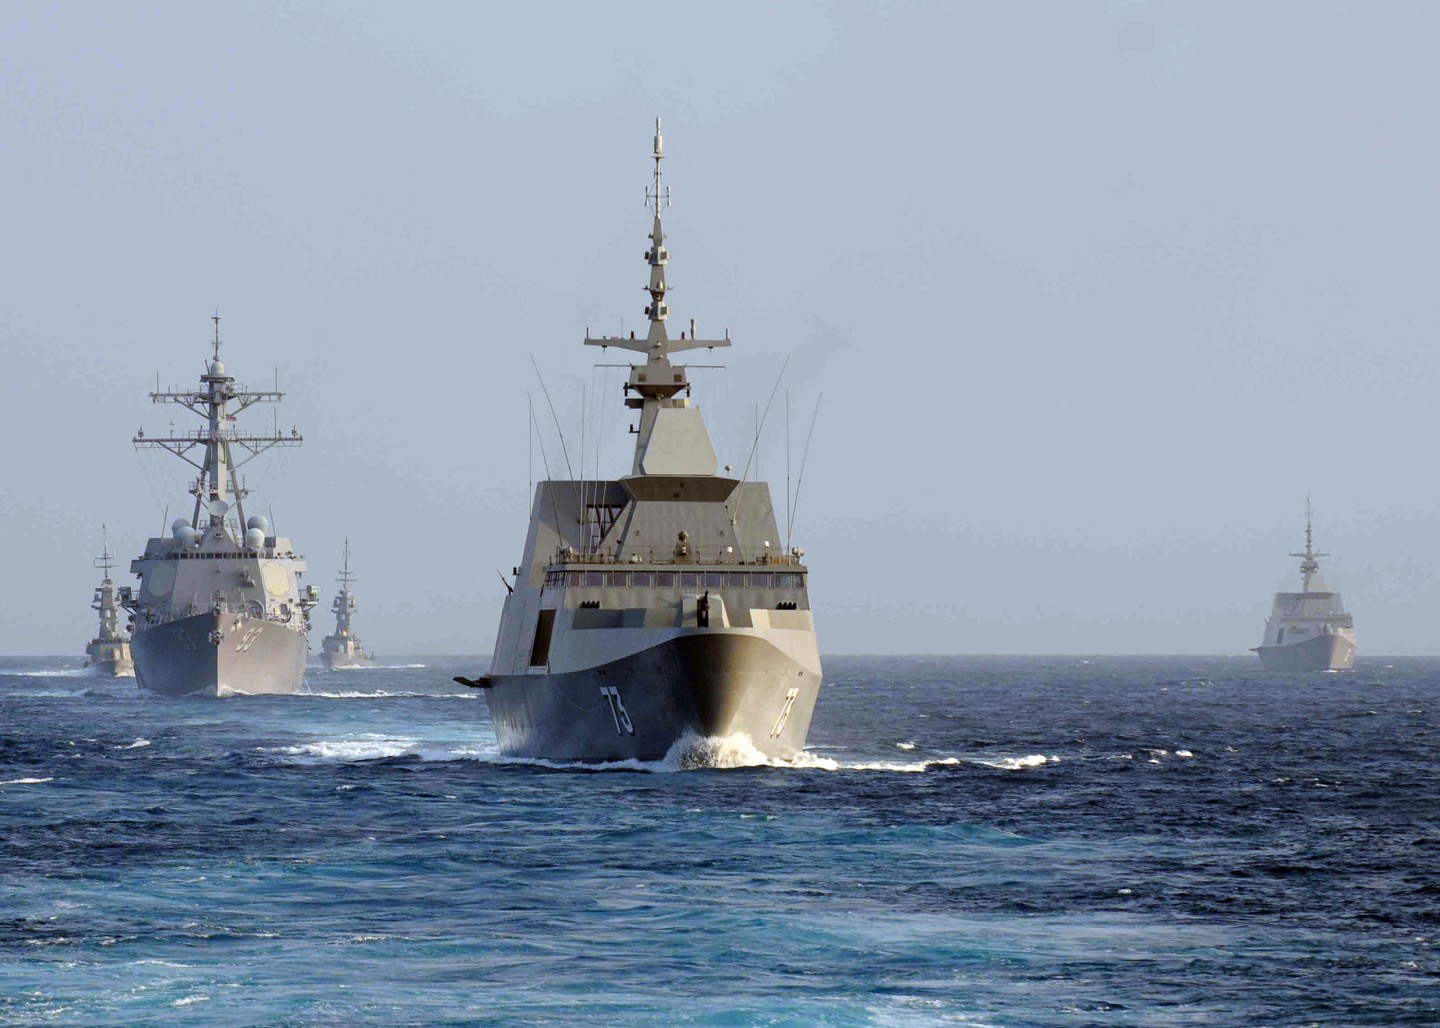 The Singapore Navy frigate RSS Supreme (FFG 73), center, leads the guided missile destroyer USS Chung-Hoon (DDG 93), left, and the Singapore Navy corvette RSS Vigour (92) during maneuvers in the South China Sea Aug. 23, 2011. The ships were participating in Cooperation Afloat Readiness and Training Singapore (CARAT) 2011. CARAT is a series of bilateral exercises held annually in Southeast Asia to strengthen relationships and enhance force readiness. (DoD photo by Mass Communication Specialist 3rd Class Andrew Smith, U.S. Navy/Released)